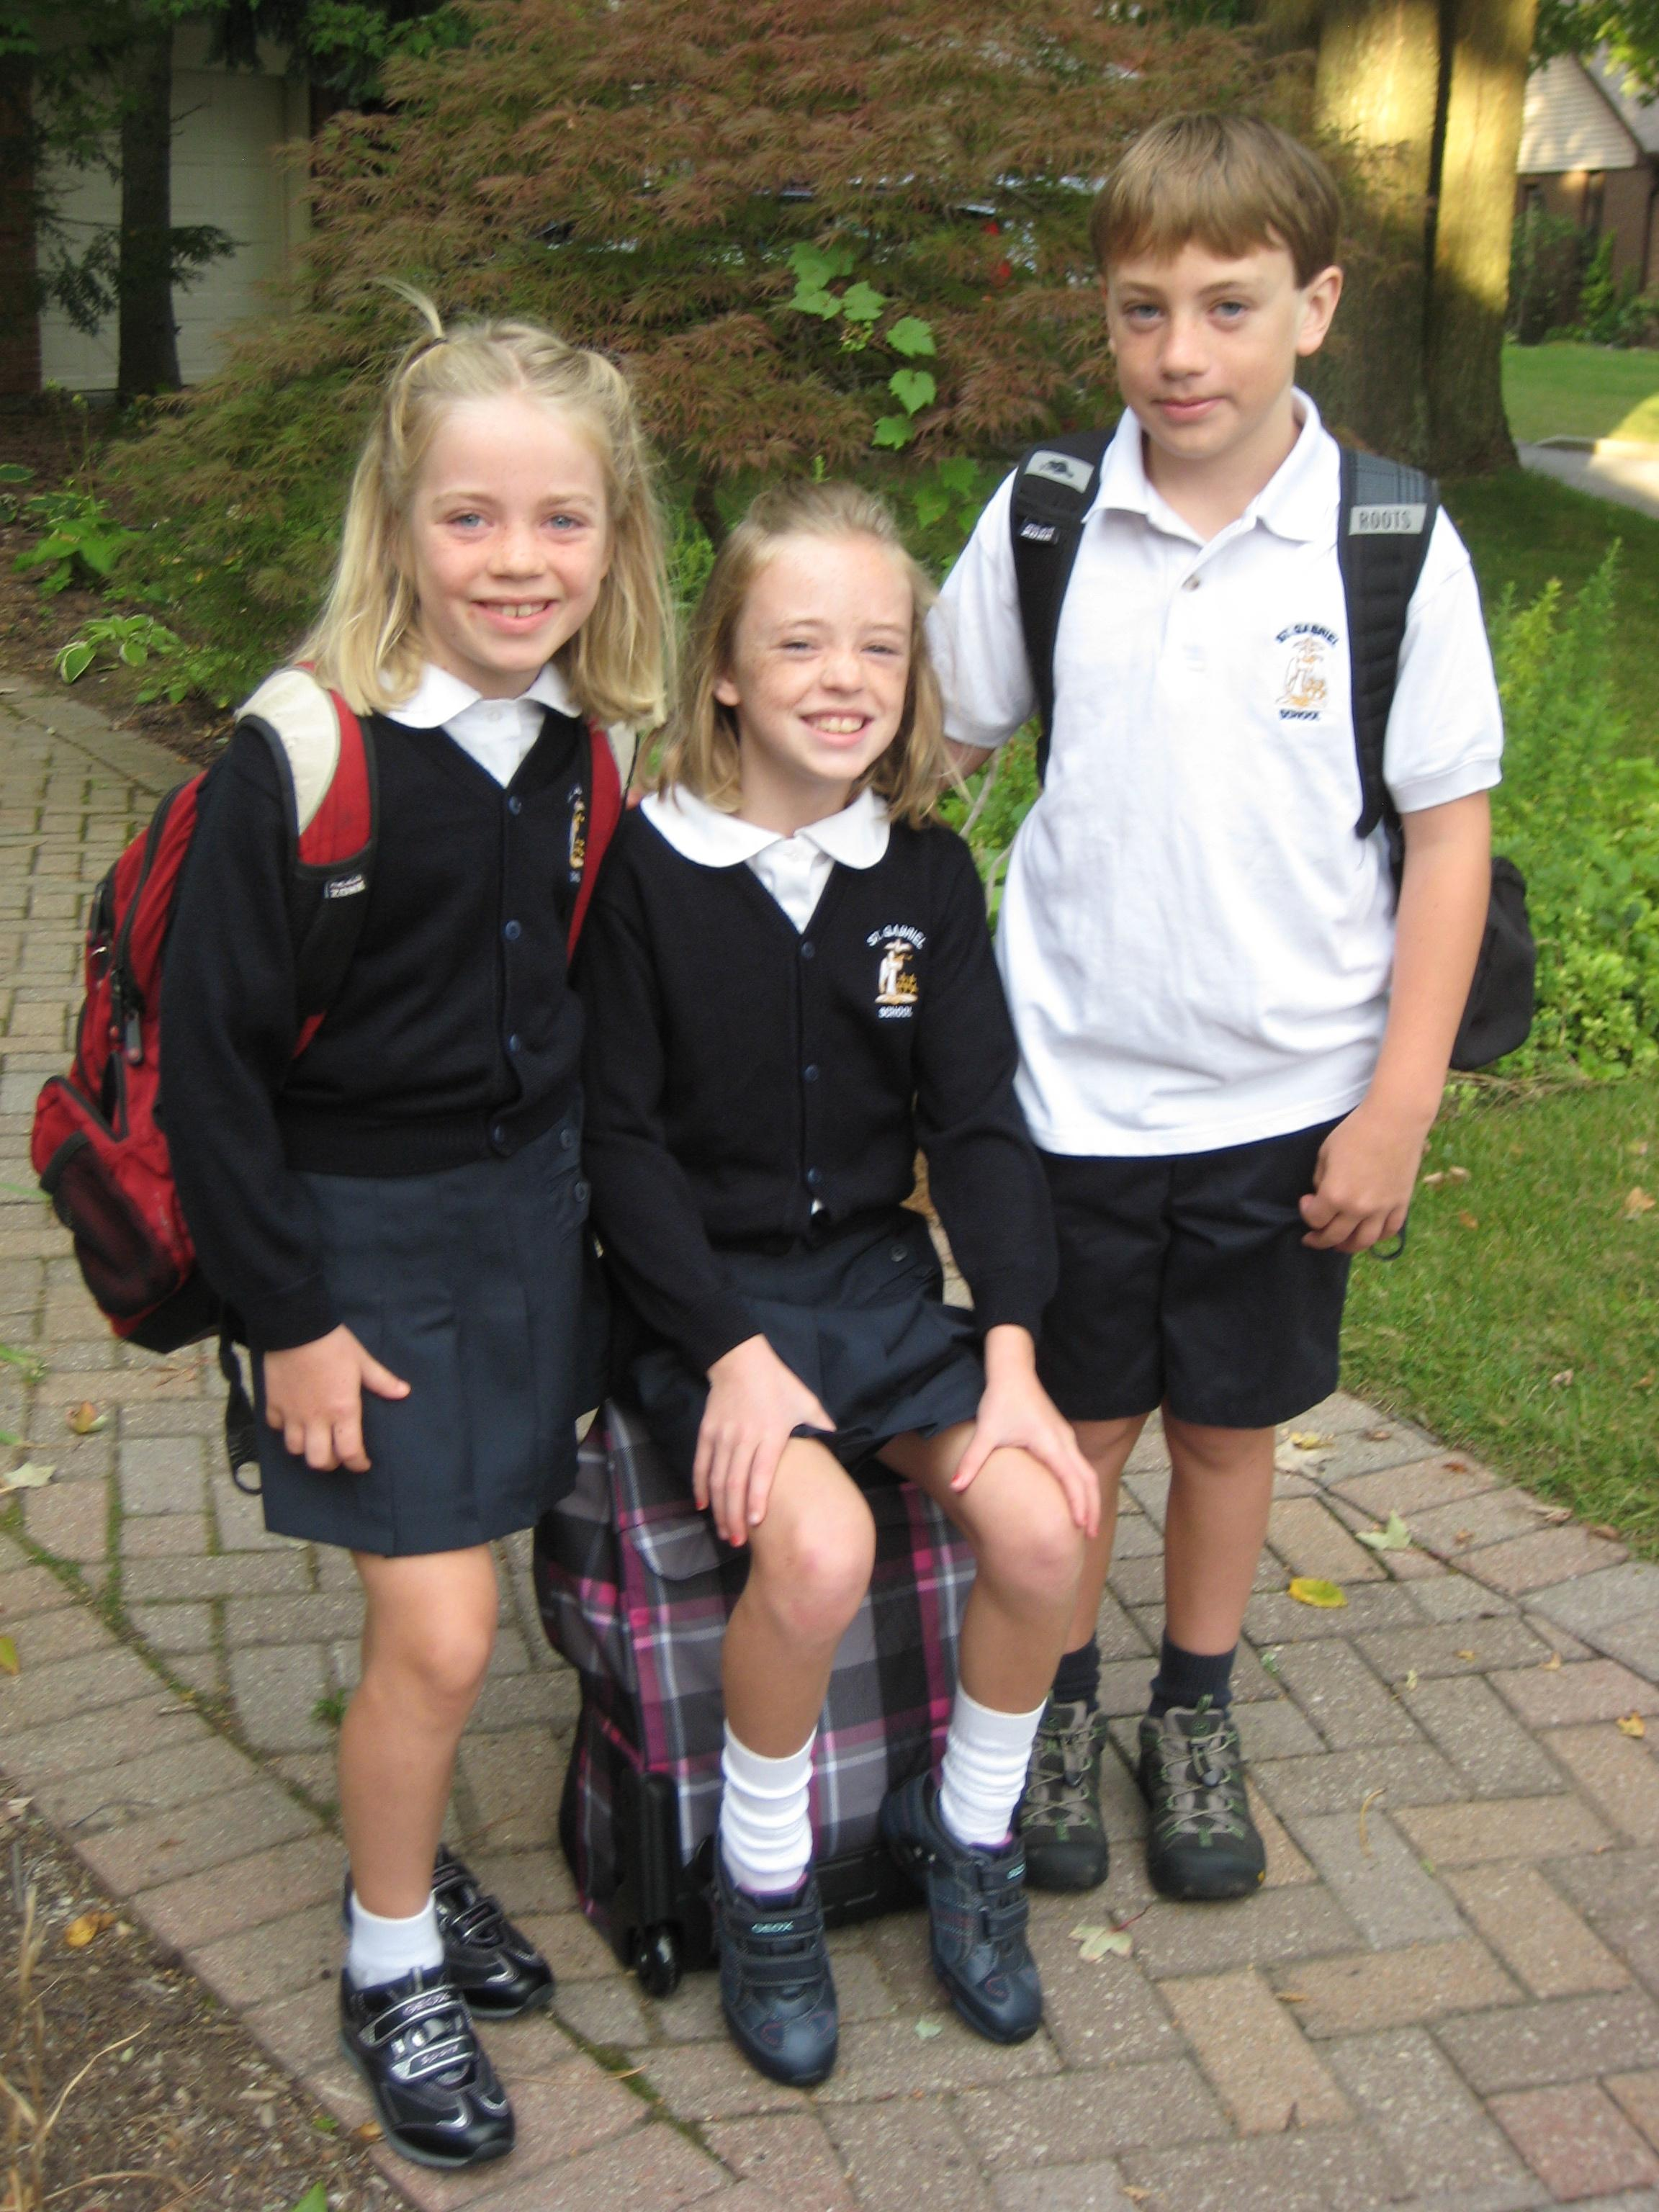 satire school uniforms At p&d uniforms and accessories inc we're passionate about uniforms fashion we enjoy helping you find the perfect uniform or accessory and believe shopping at our outlet should be fun and enjoyable.